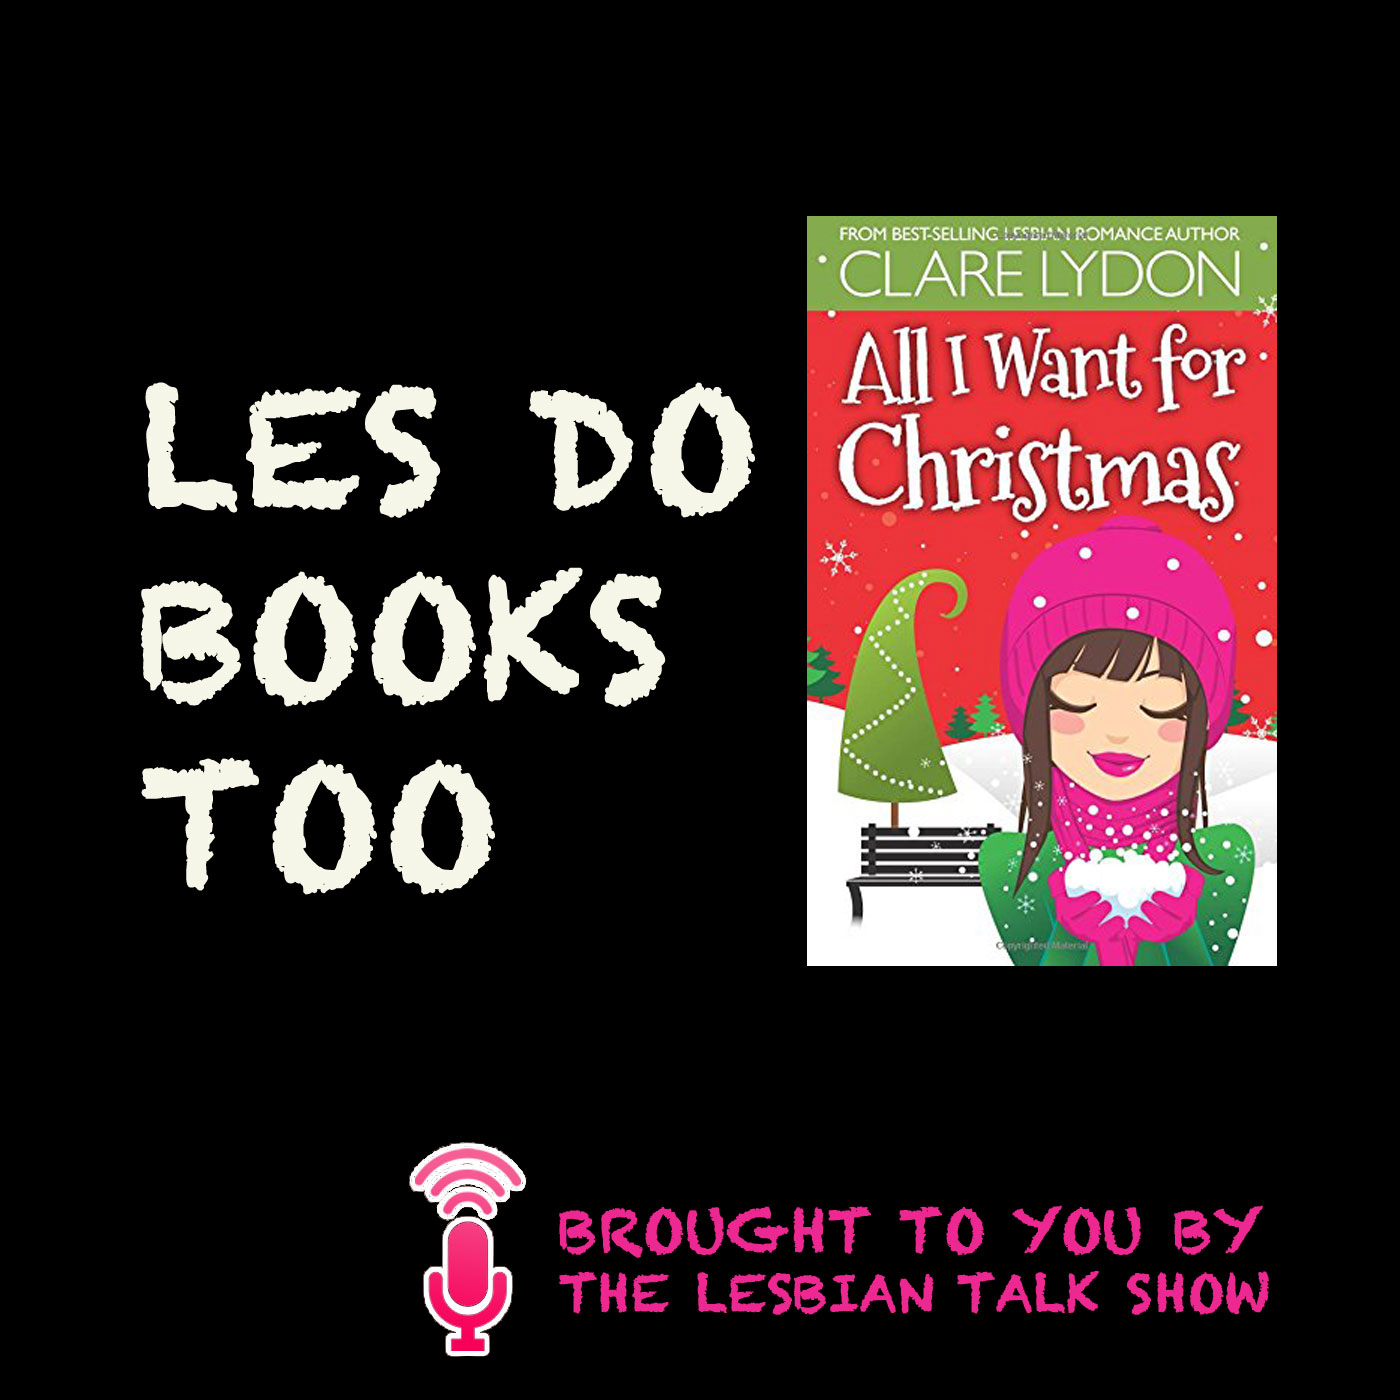 Les Do Books Too: All I Want For Christmas by Clare Lydon